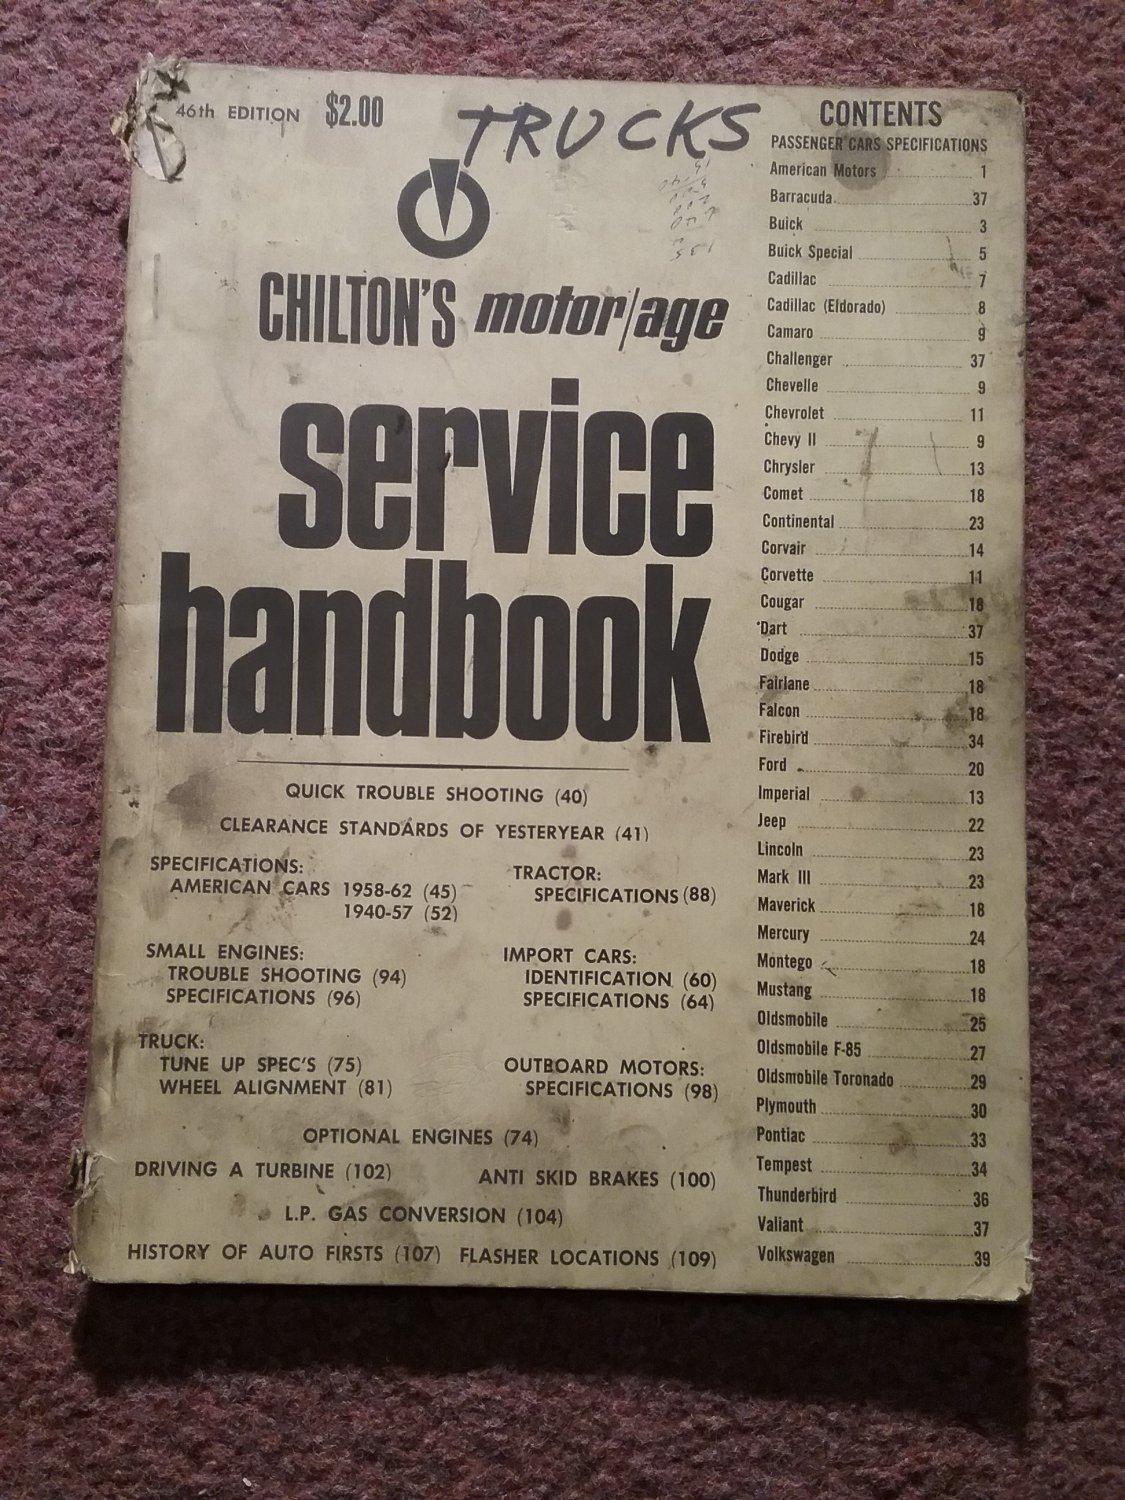 1971 46th Edition Chiltons Service Handbook, Passenget Cars Trucks 070716121